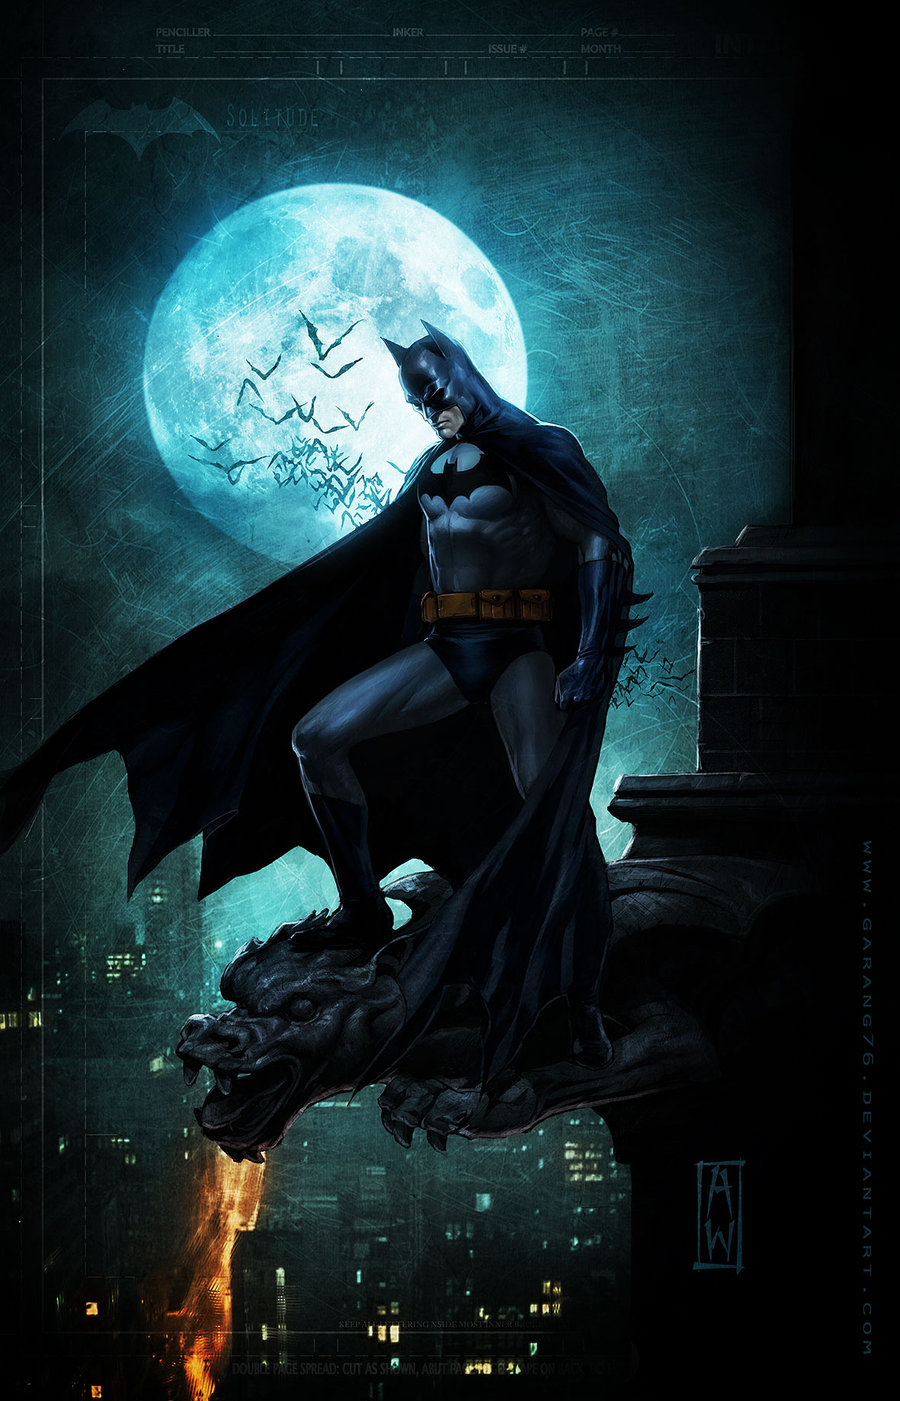 Batman Hd Wallpaper Download